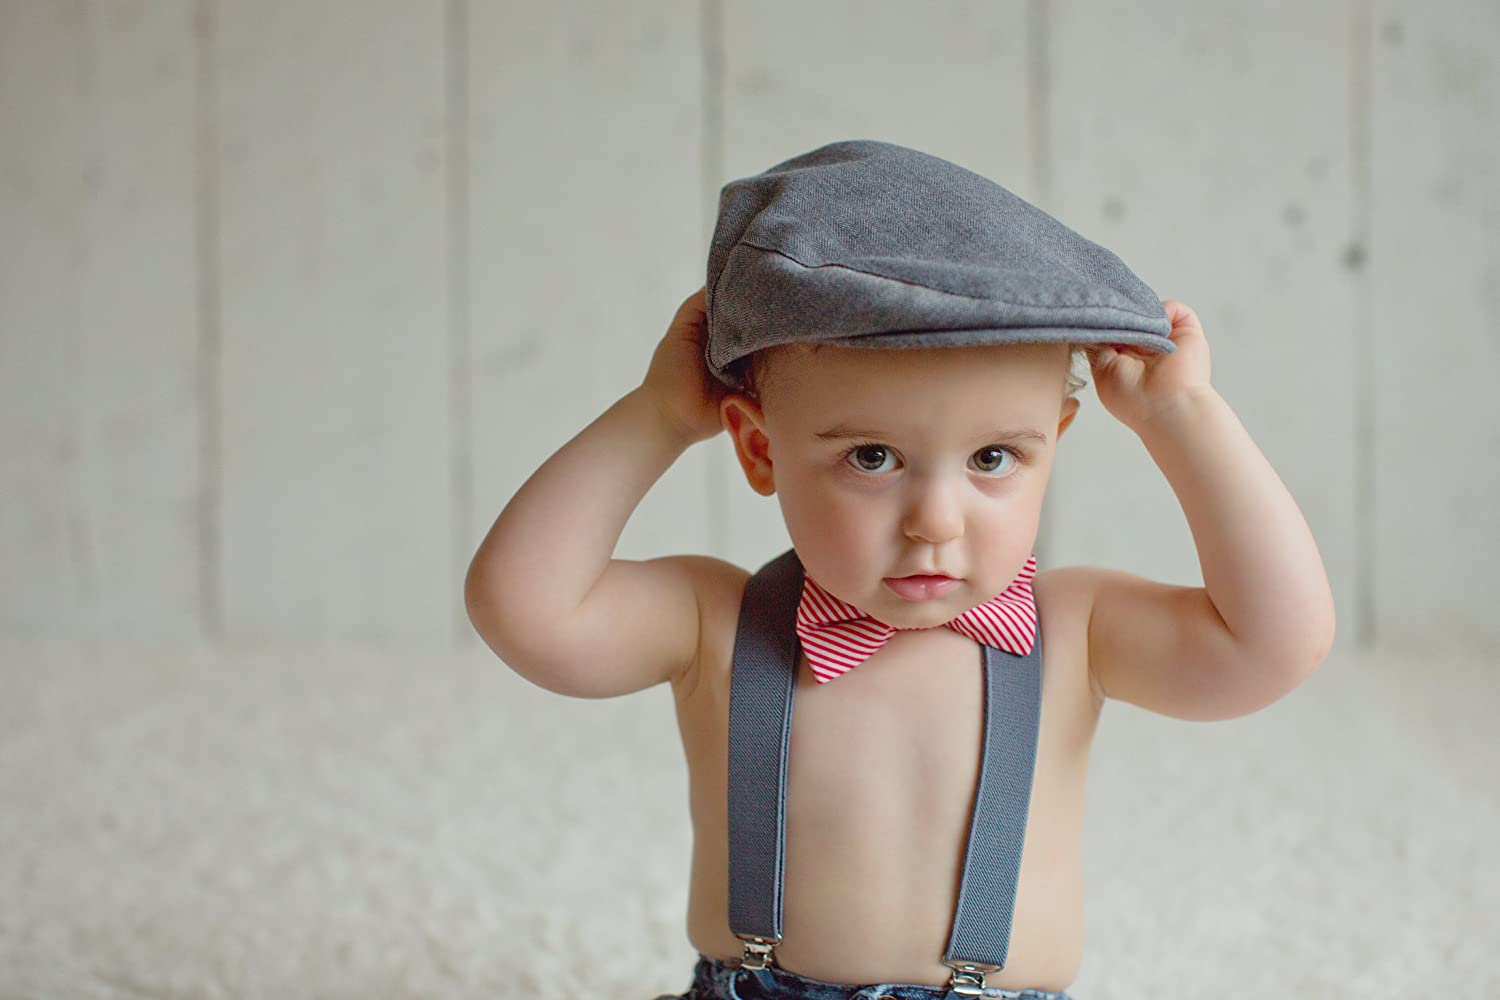 fa946e7d Born to Love Baby Boy's Hat Grey Herringbone Driver Page Boy Cap:  Amazon.co.uk: Clothing